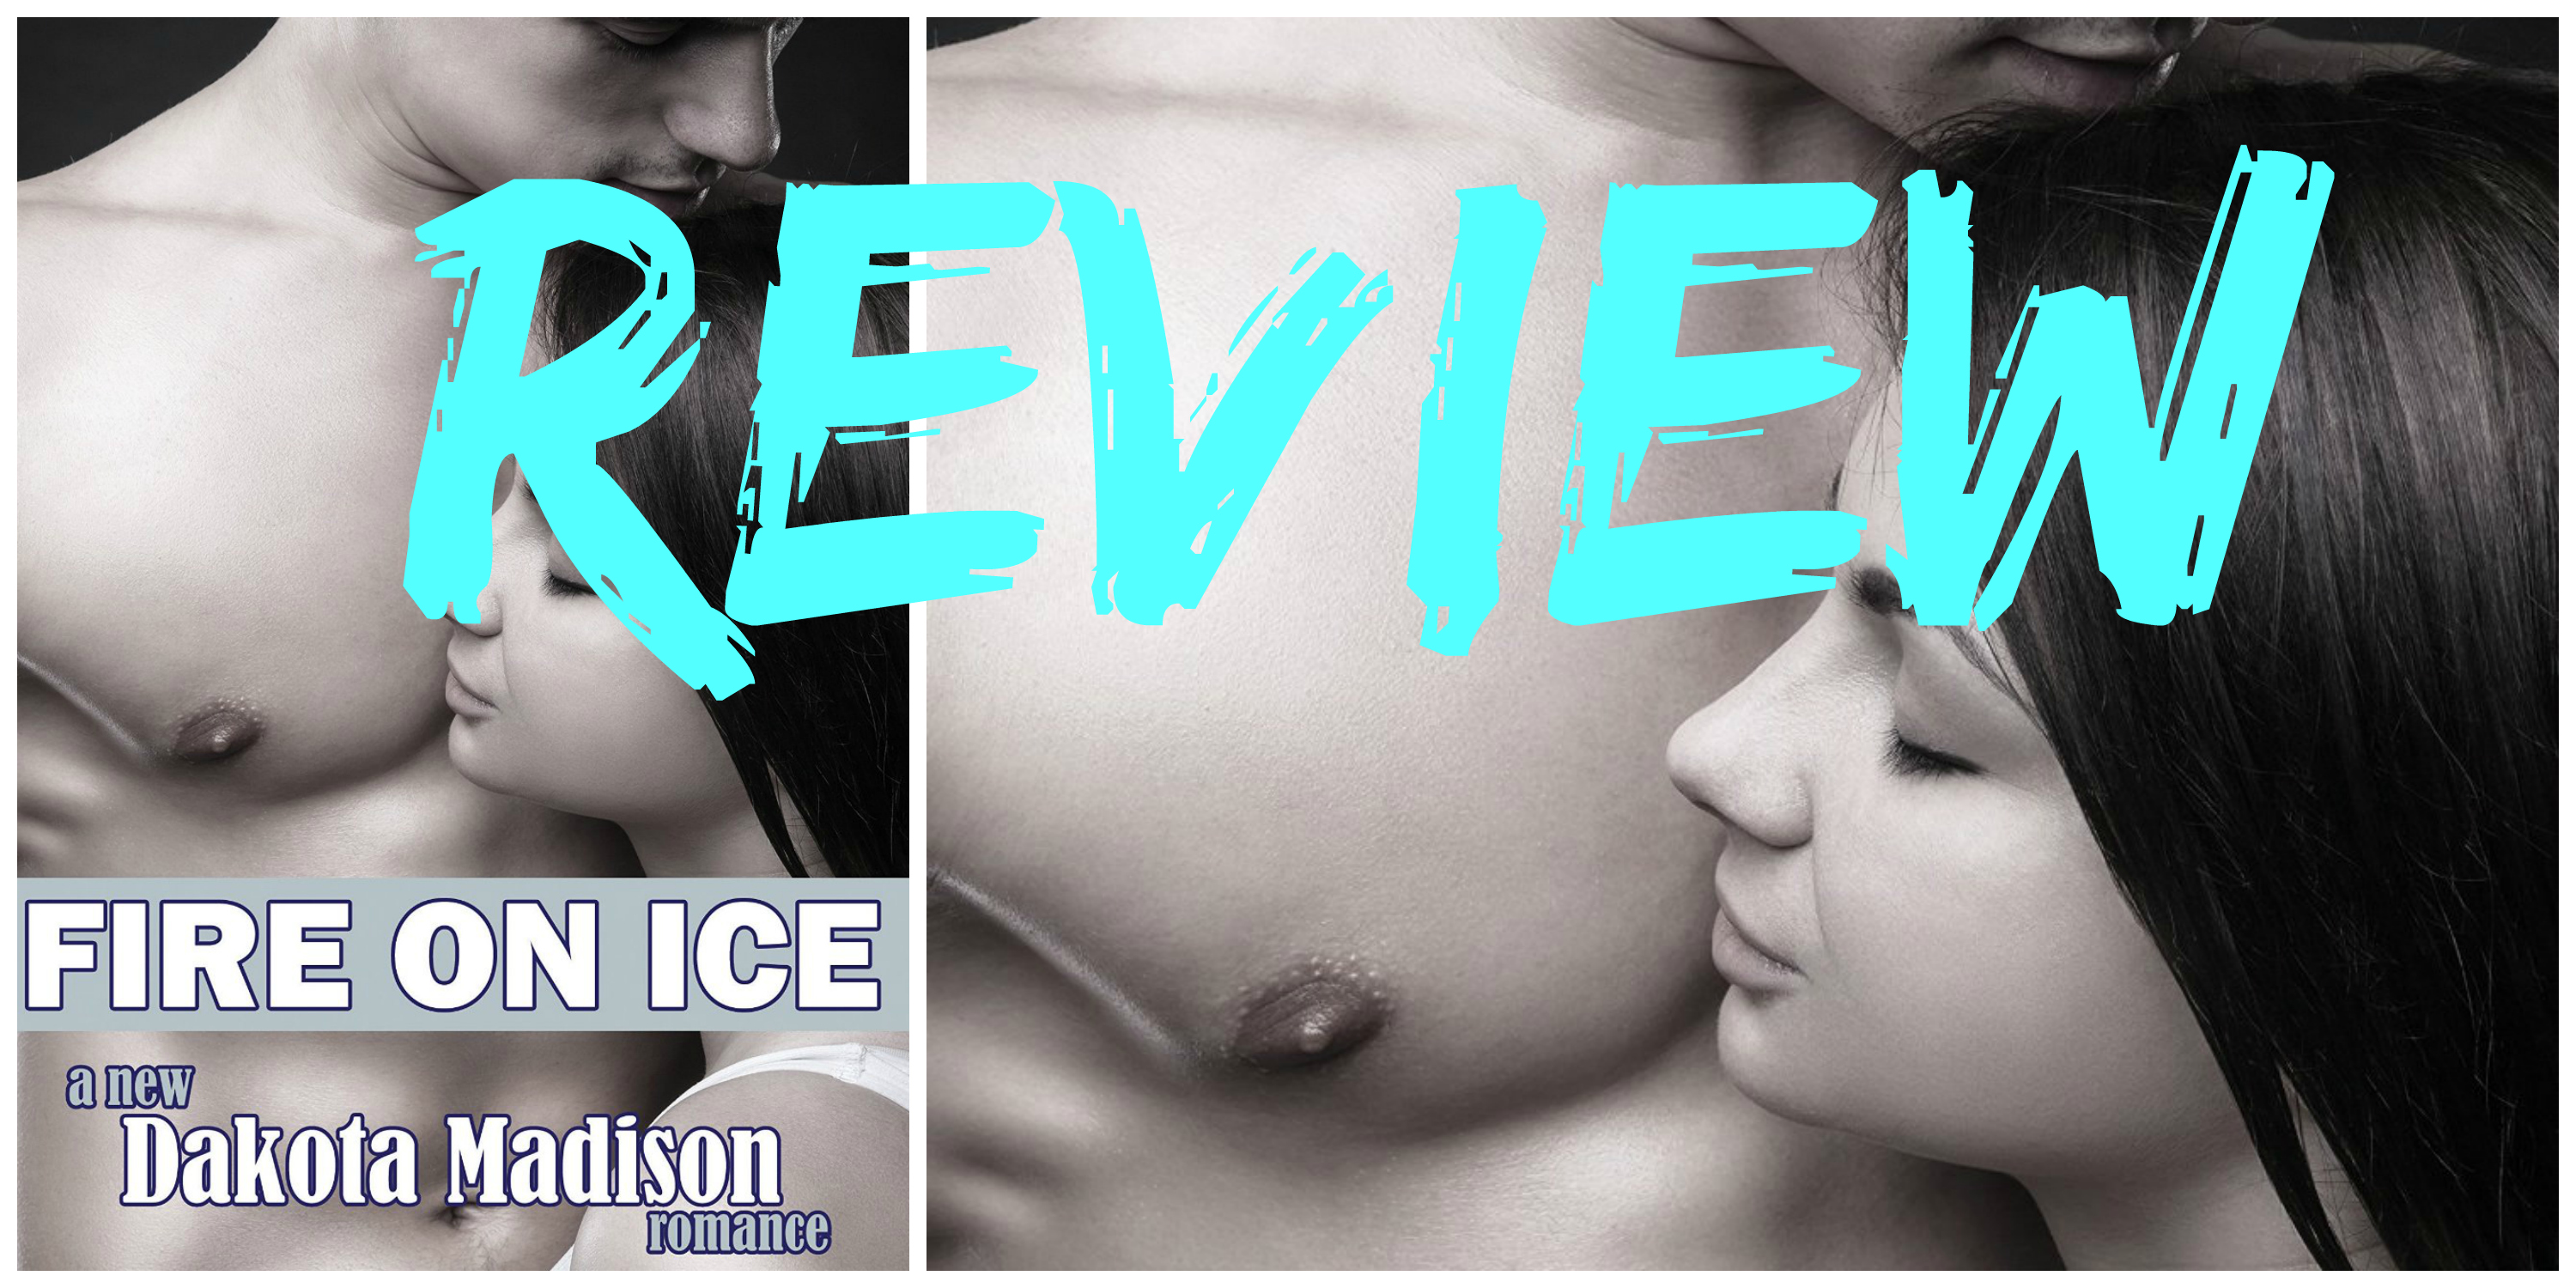 REVIEW • SULTAN: FIRE ON ICE by Dakota Madison